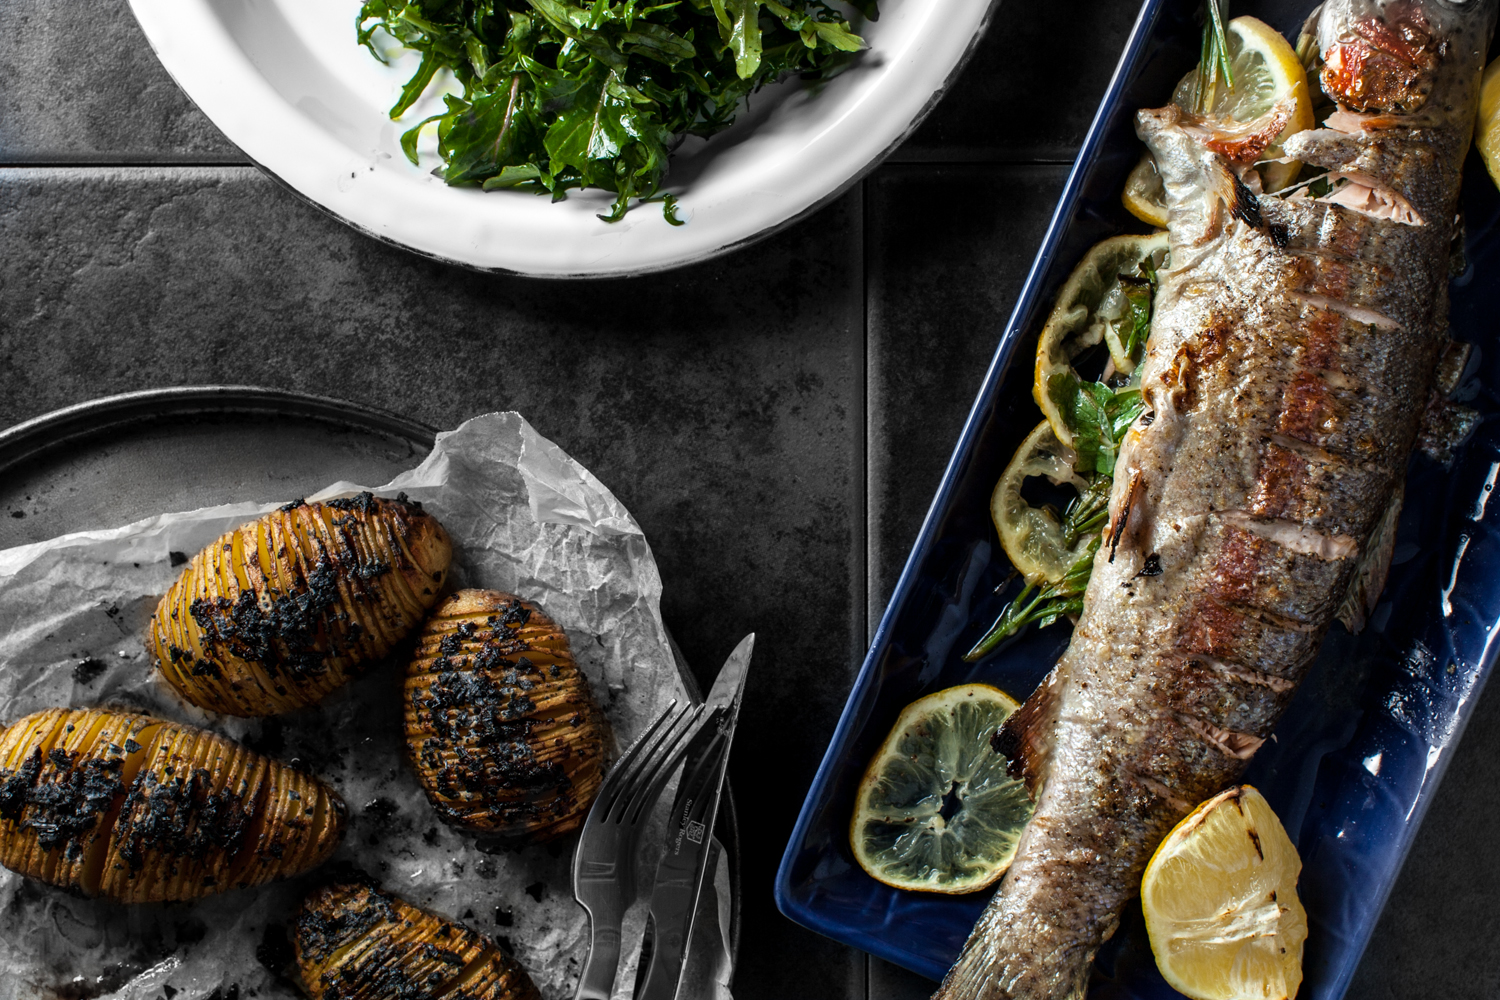 Grilled Rainbow Trout Dinner for Two. Hasselback Potatoes, Rocket Salad and Grilled Rainbow Trout.  Recipe and styling by   Cle-ann  , photo by   Hugh Adams  .